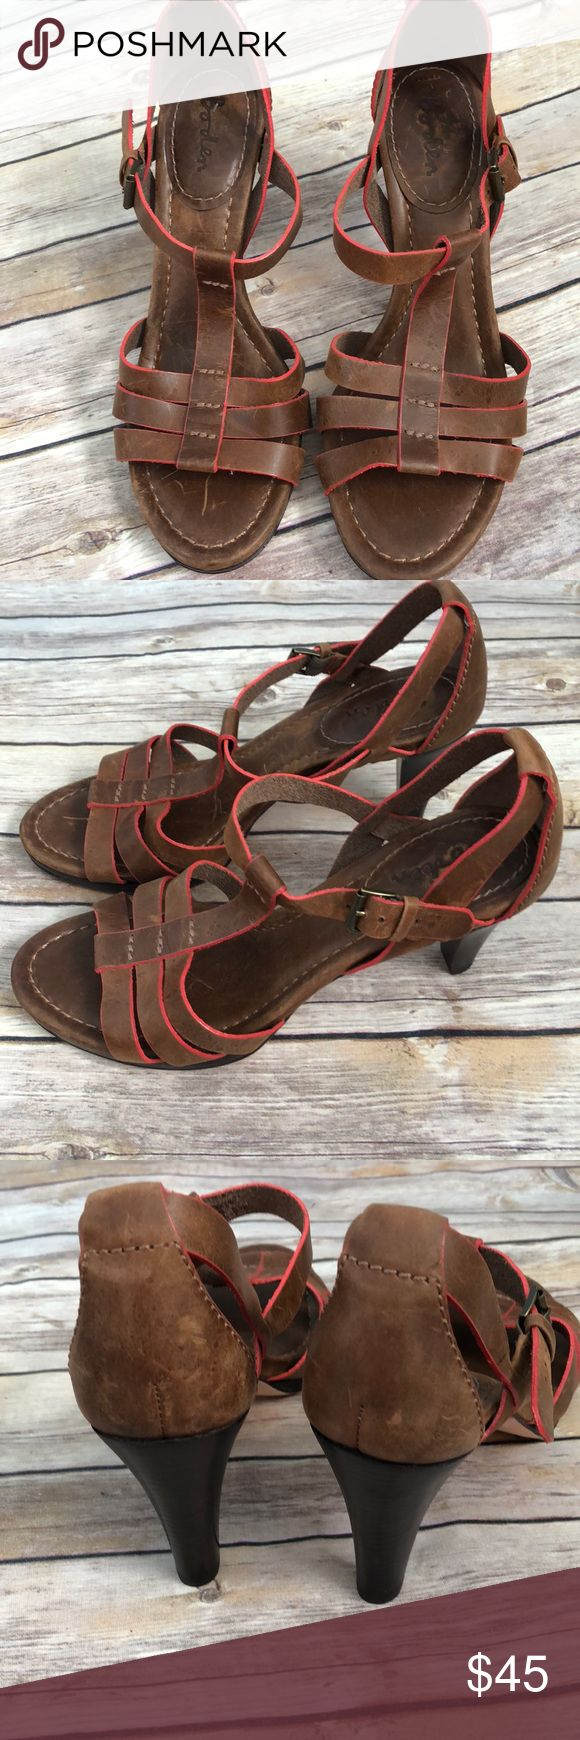 Boden brown leather open toe heels size 39 Gorgeous boden leather shoes brown with orangey red trim. 3.5 inch heel. Size 39. In great condition! Boden Shoes Heels